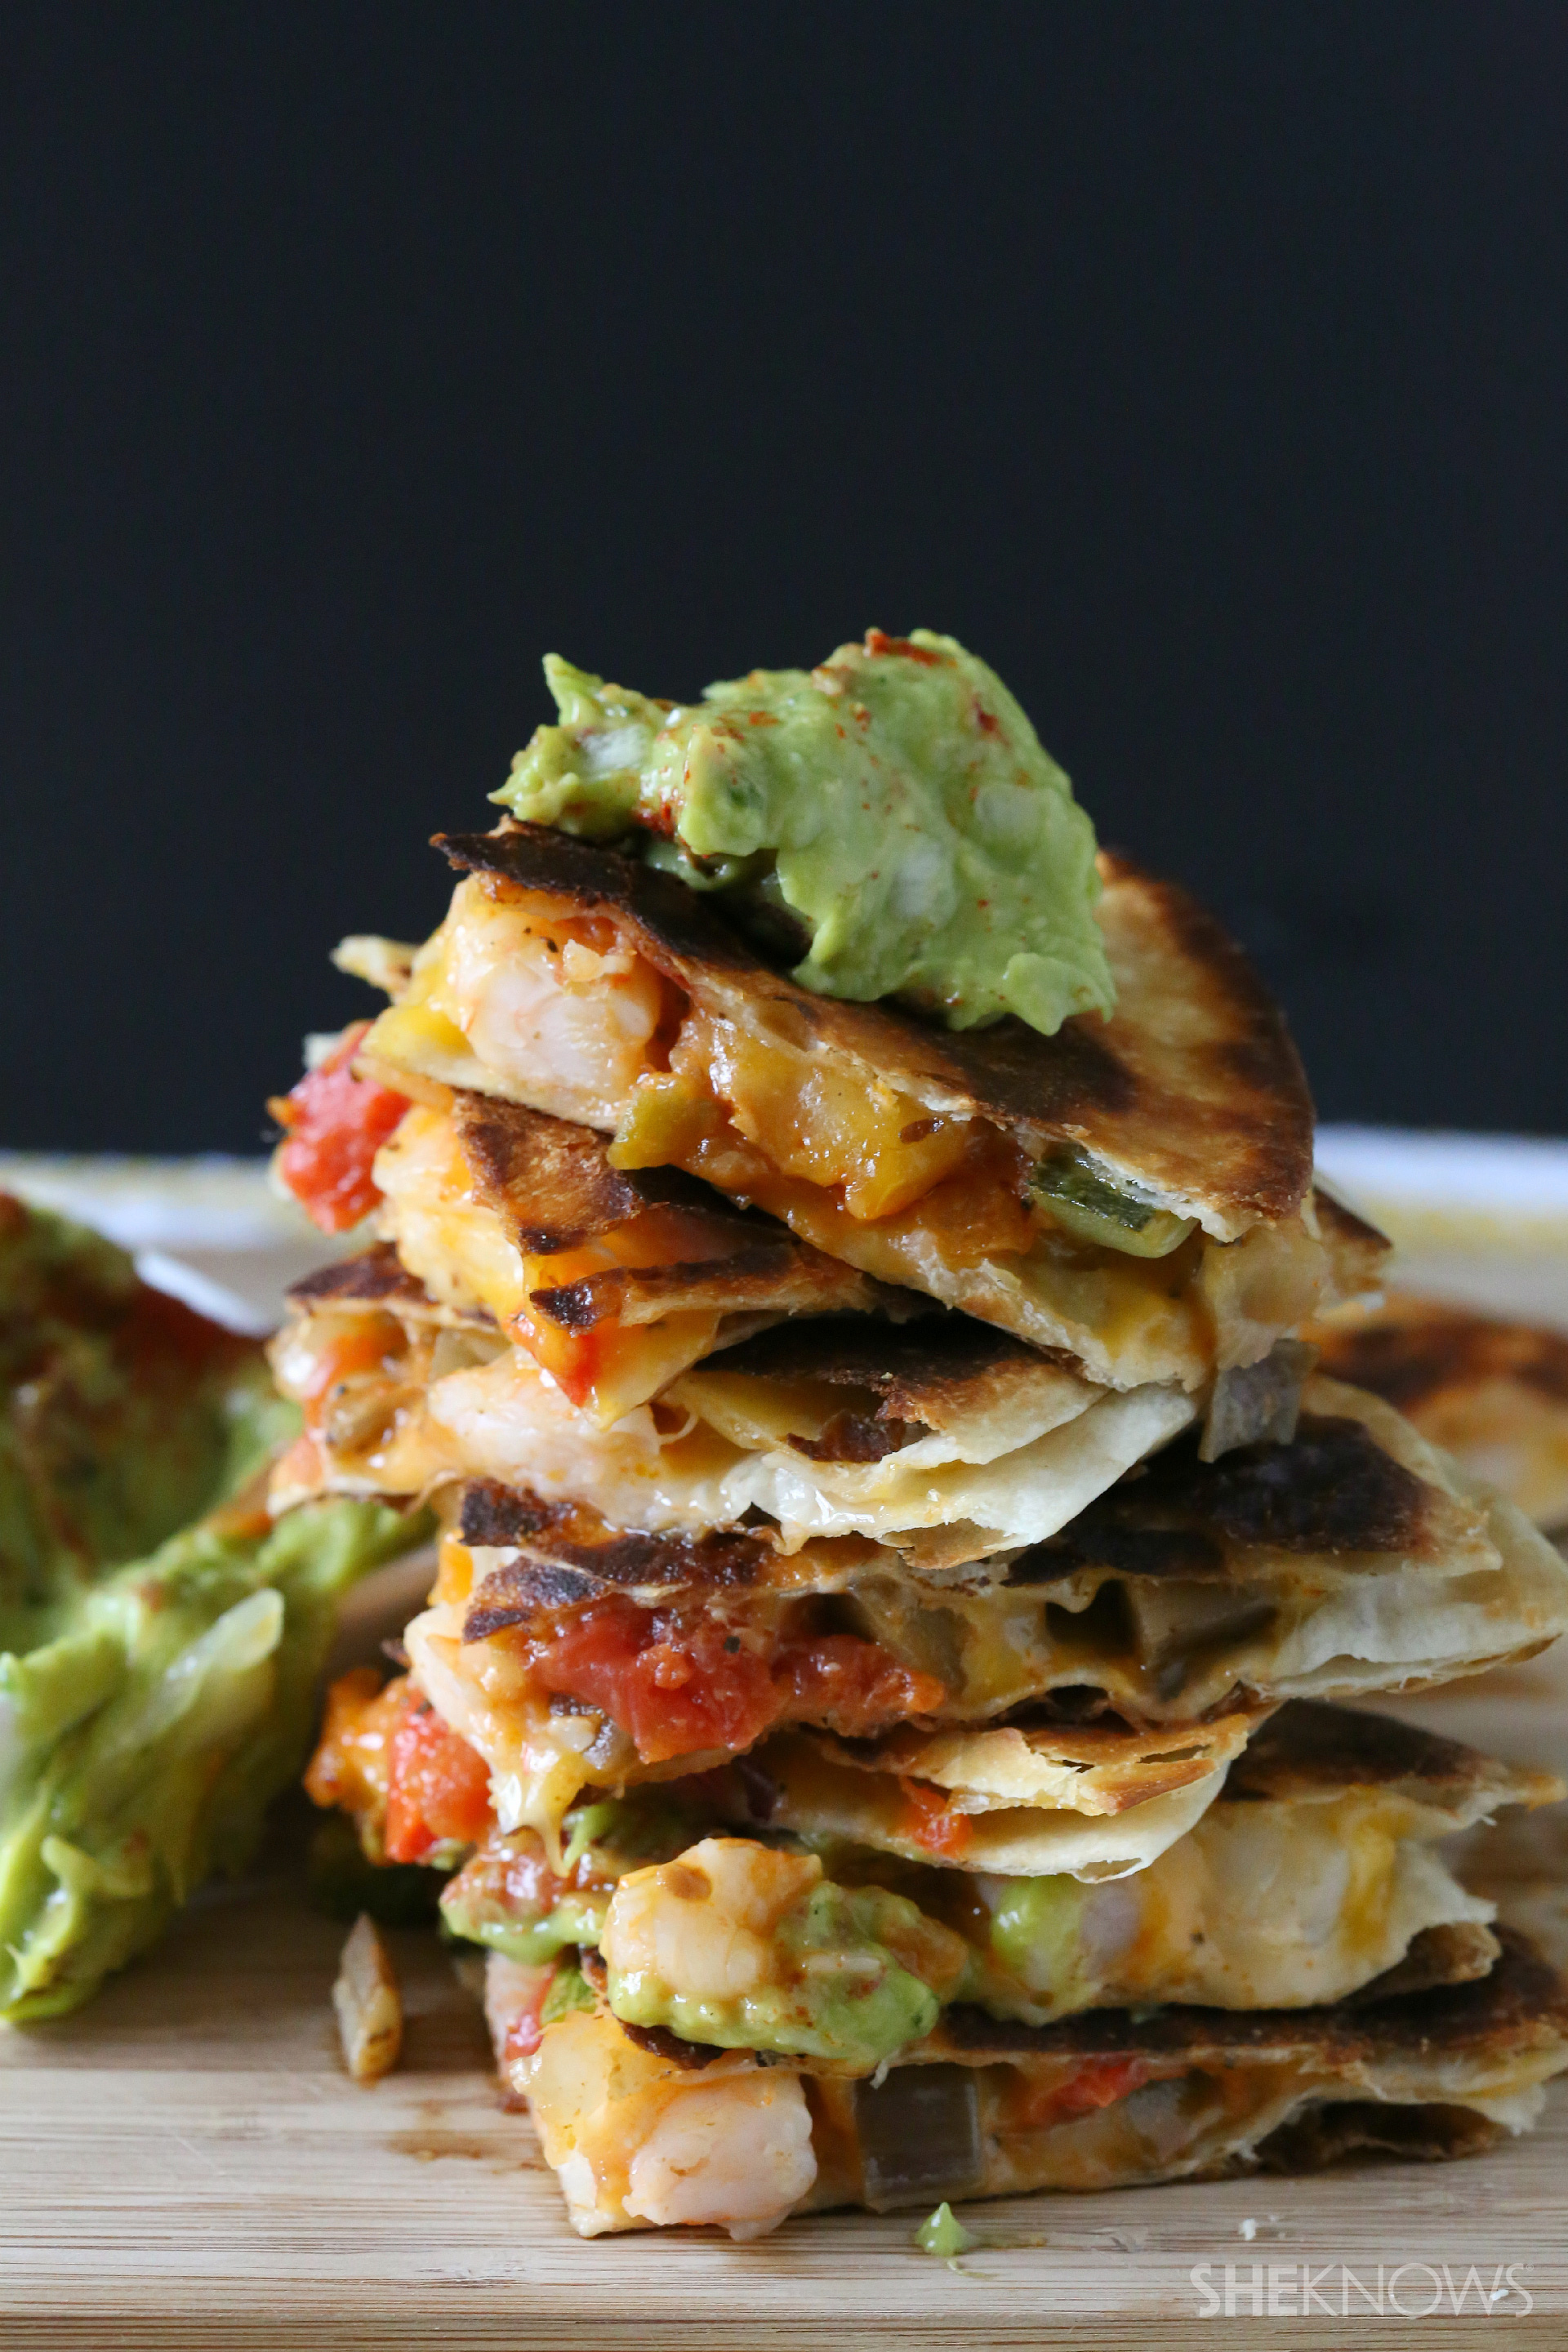 Spicy shrimp quesadillas with chipotle avocado sauce